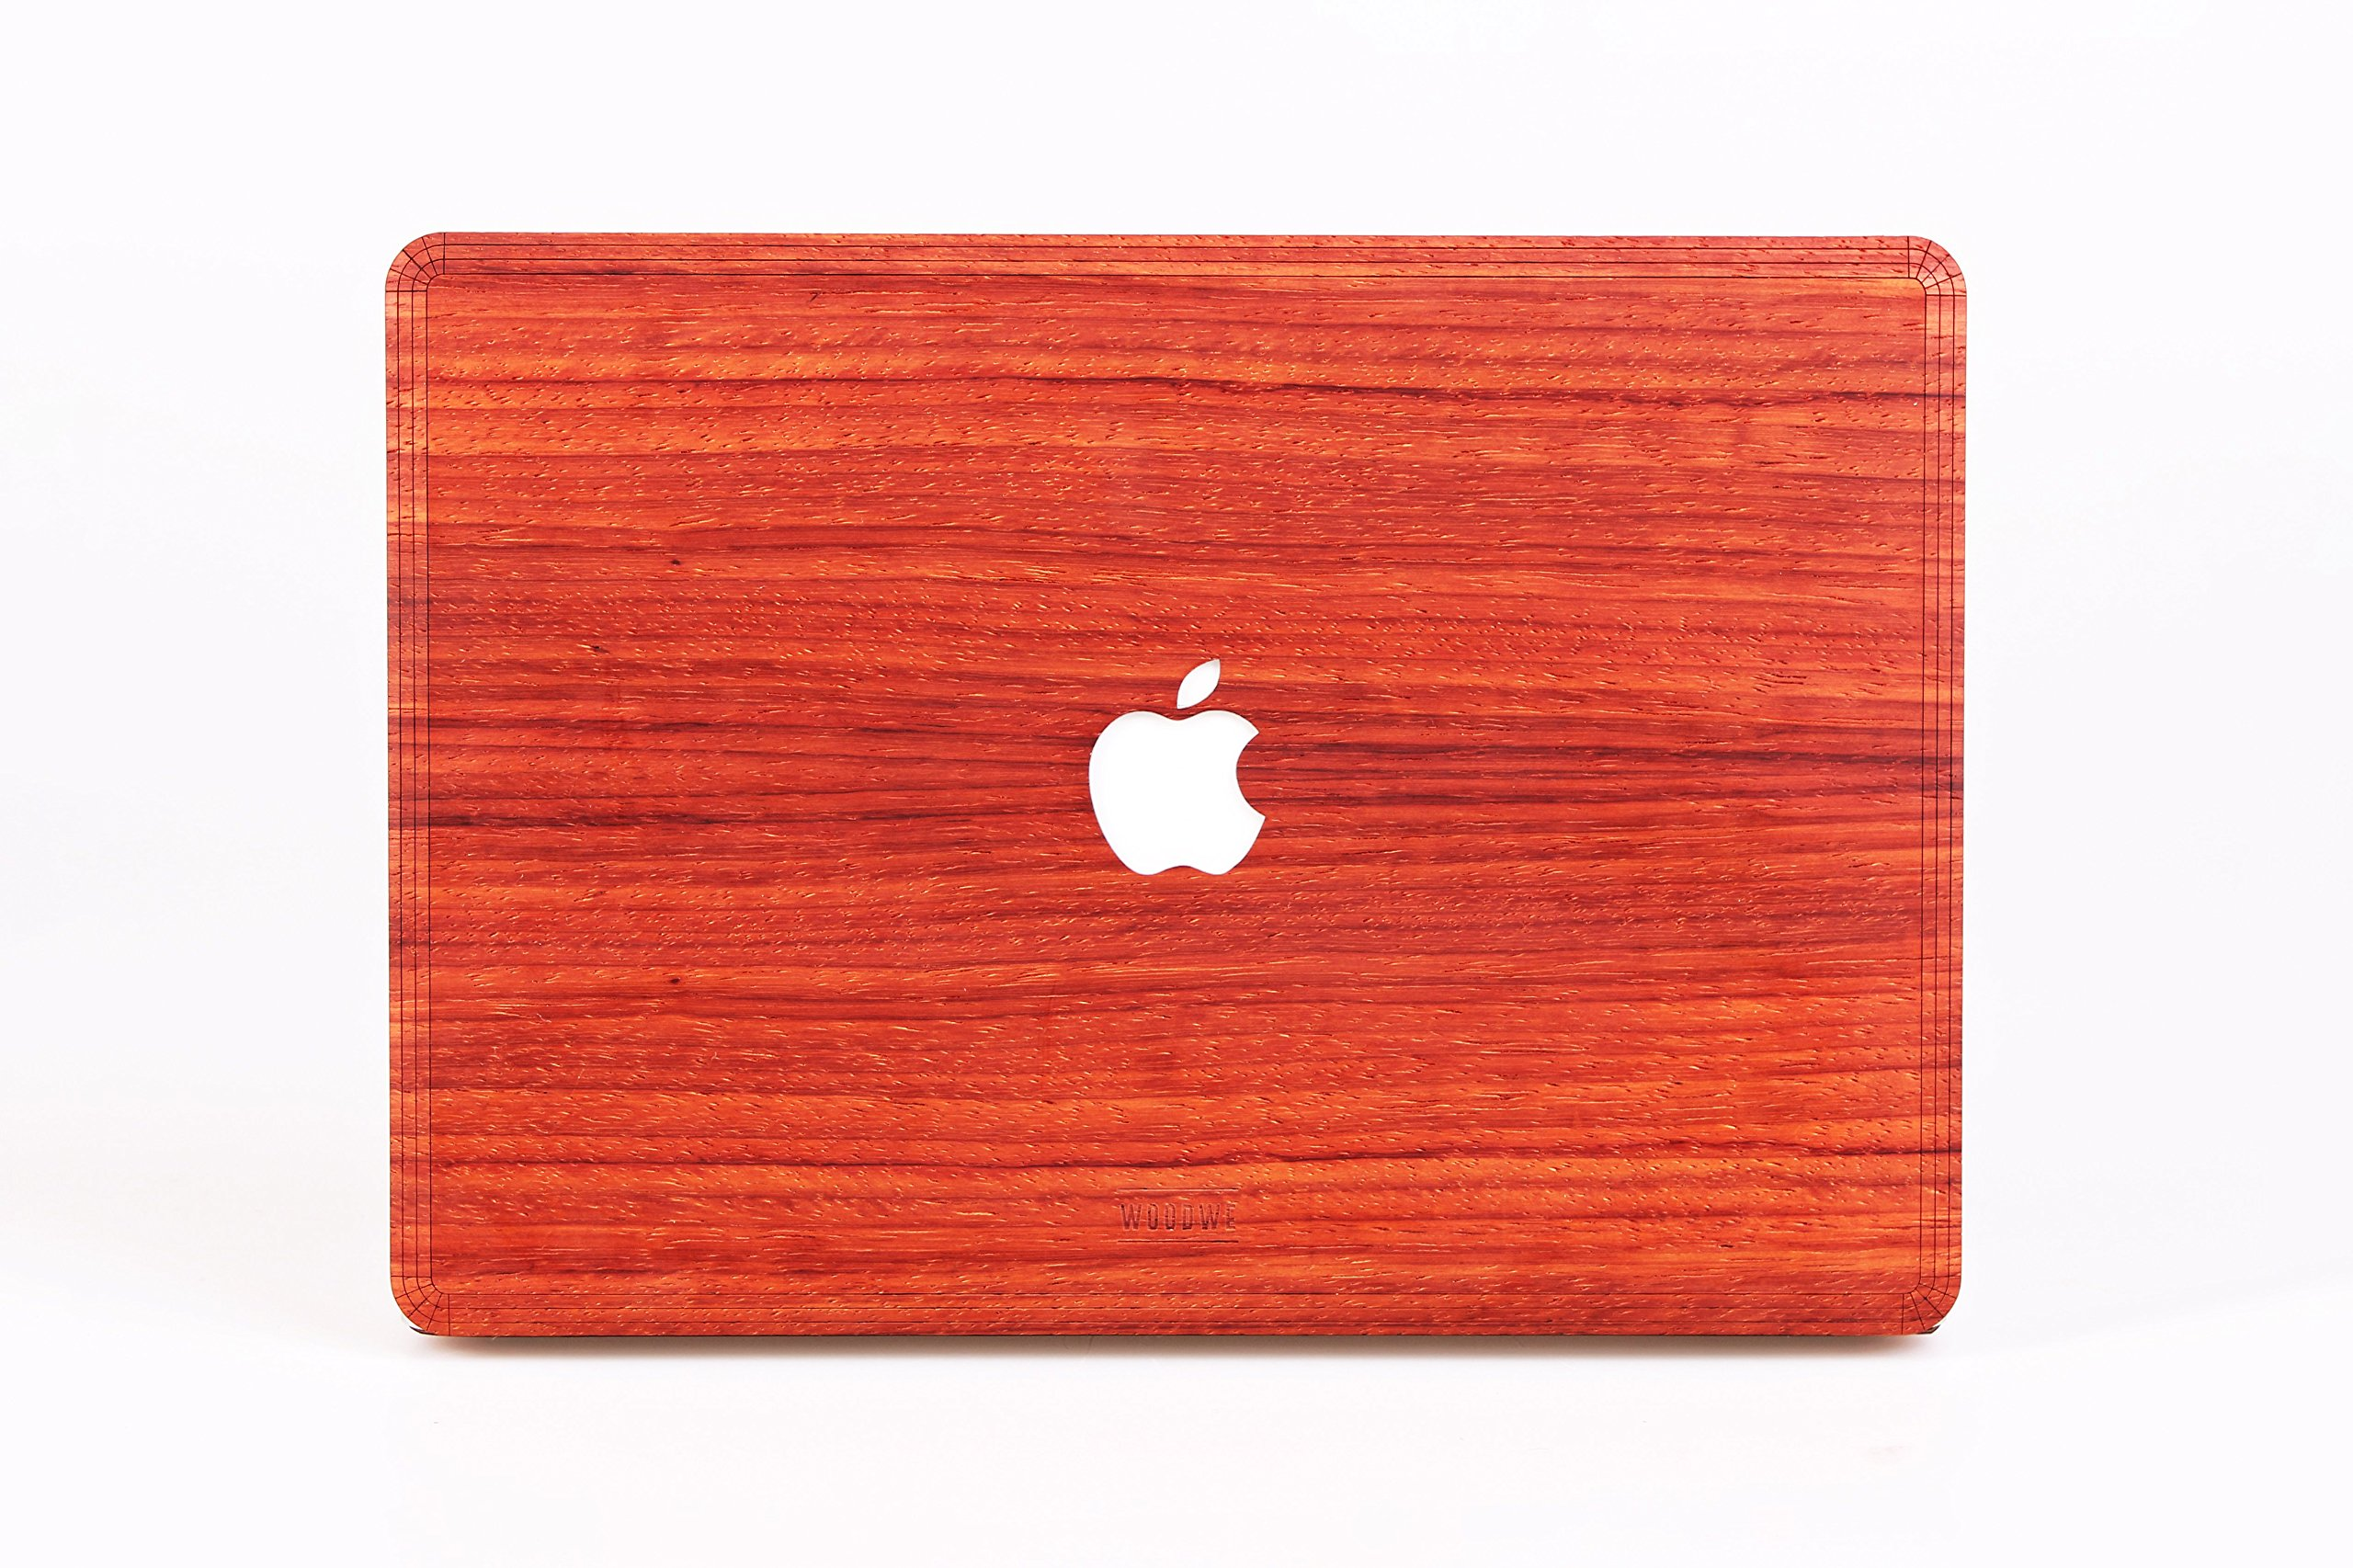 WOODWE Real Wood MacBook Skin Sticker Decal for Mac Pro 13 inch Retina Display | Model: A1425/A1502; Late 2012 – Early 2015 | Genuine & Natural PADAUK Wood | TOP&Bottom Cover